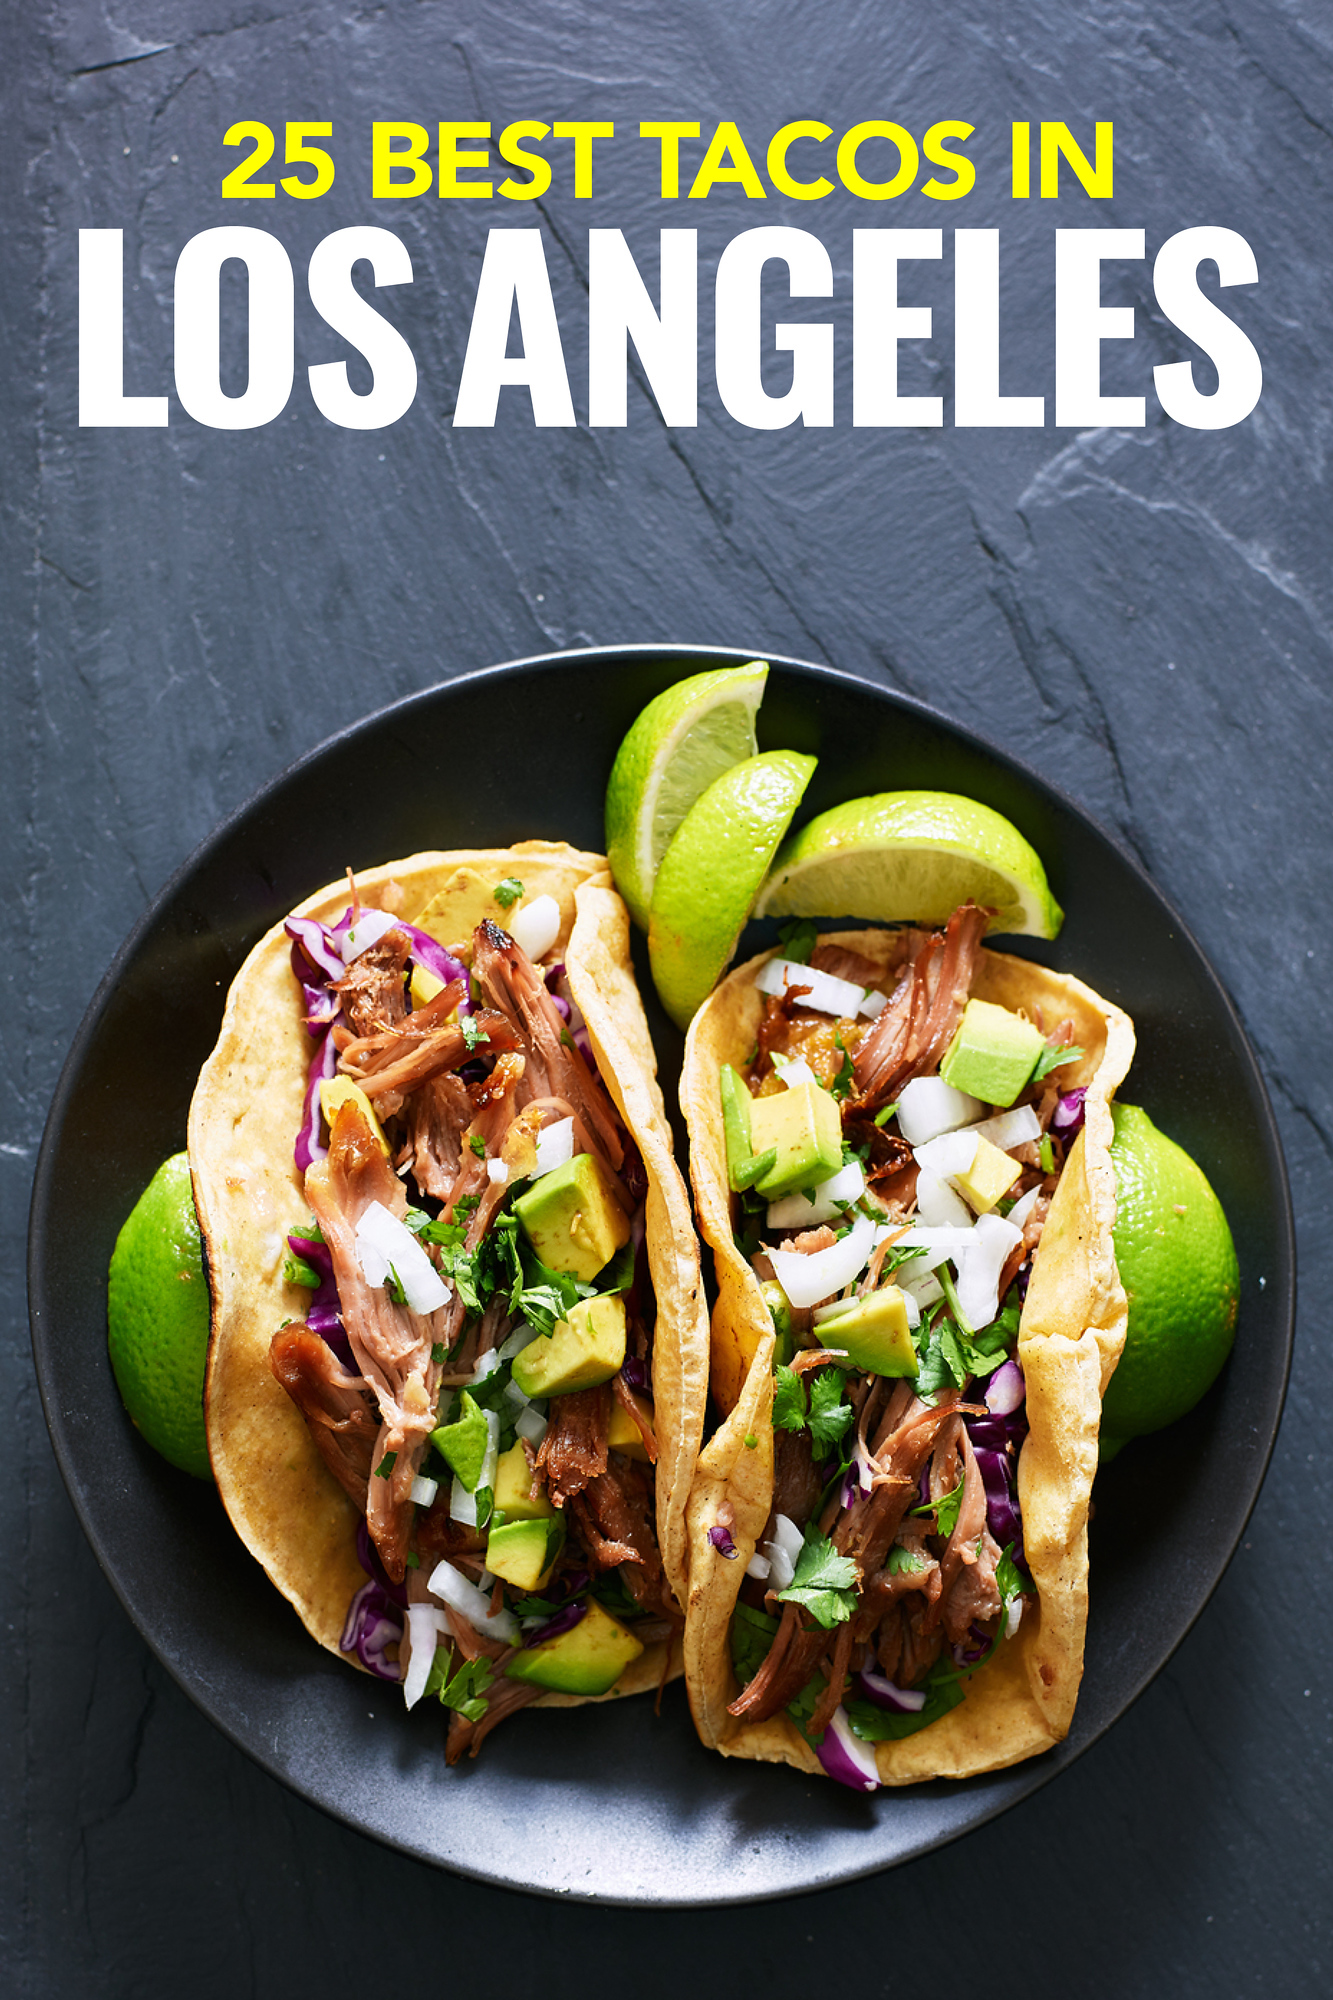 Where to find the best tacos in LA with DineL.A's taco trek. #losangeles #tacos #restaurants